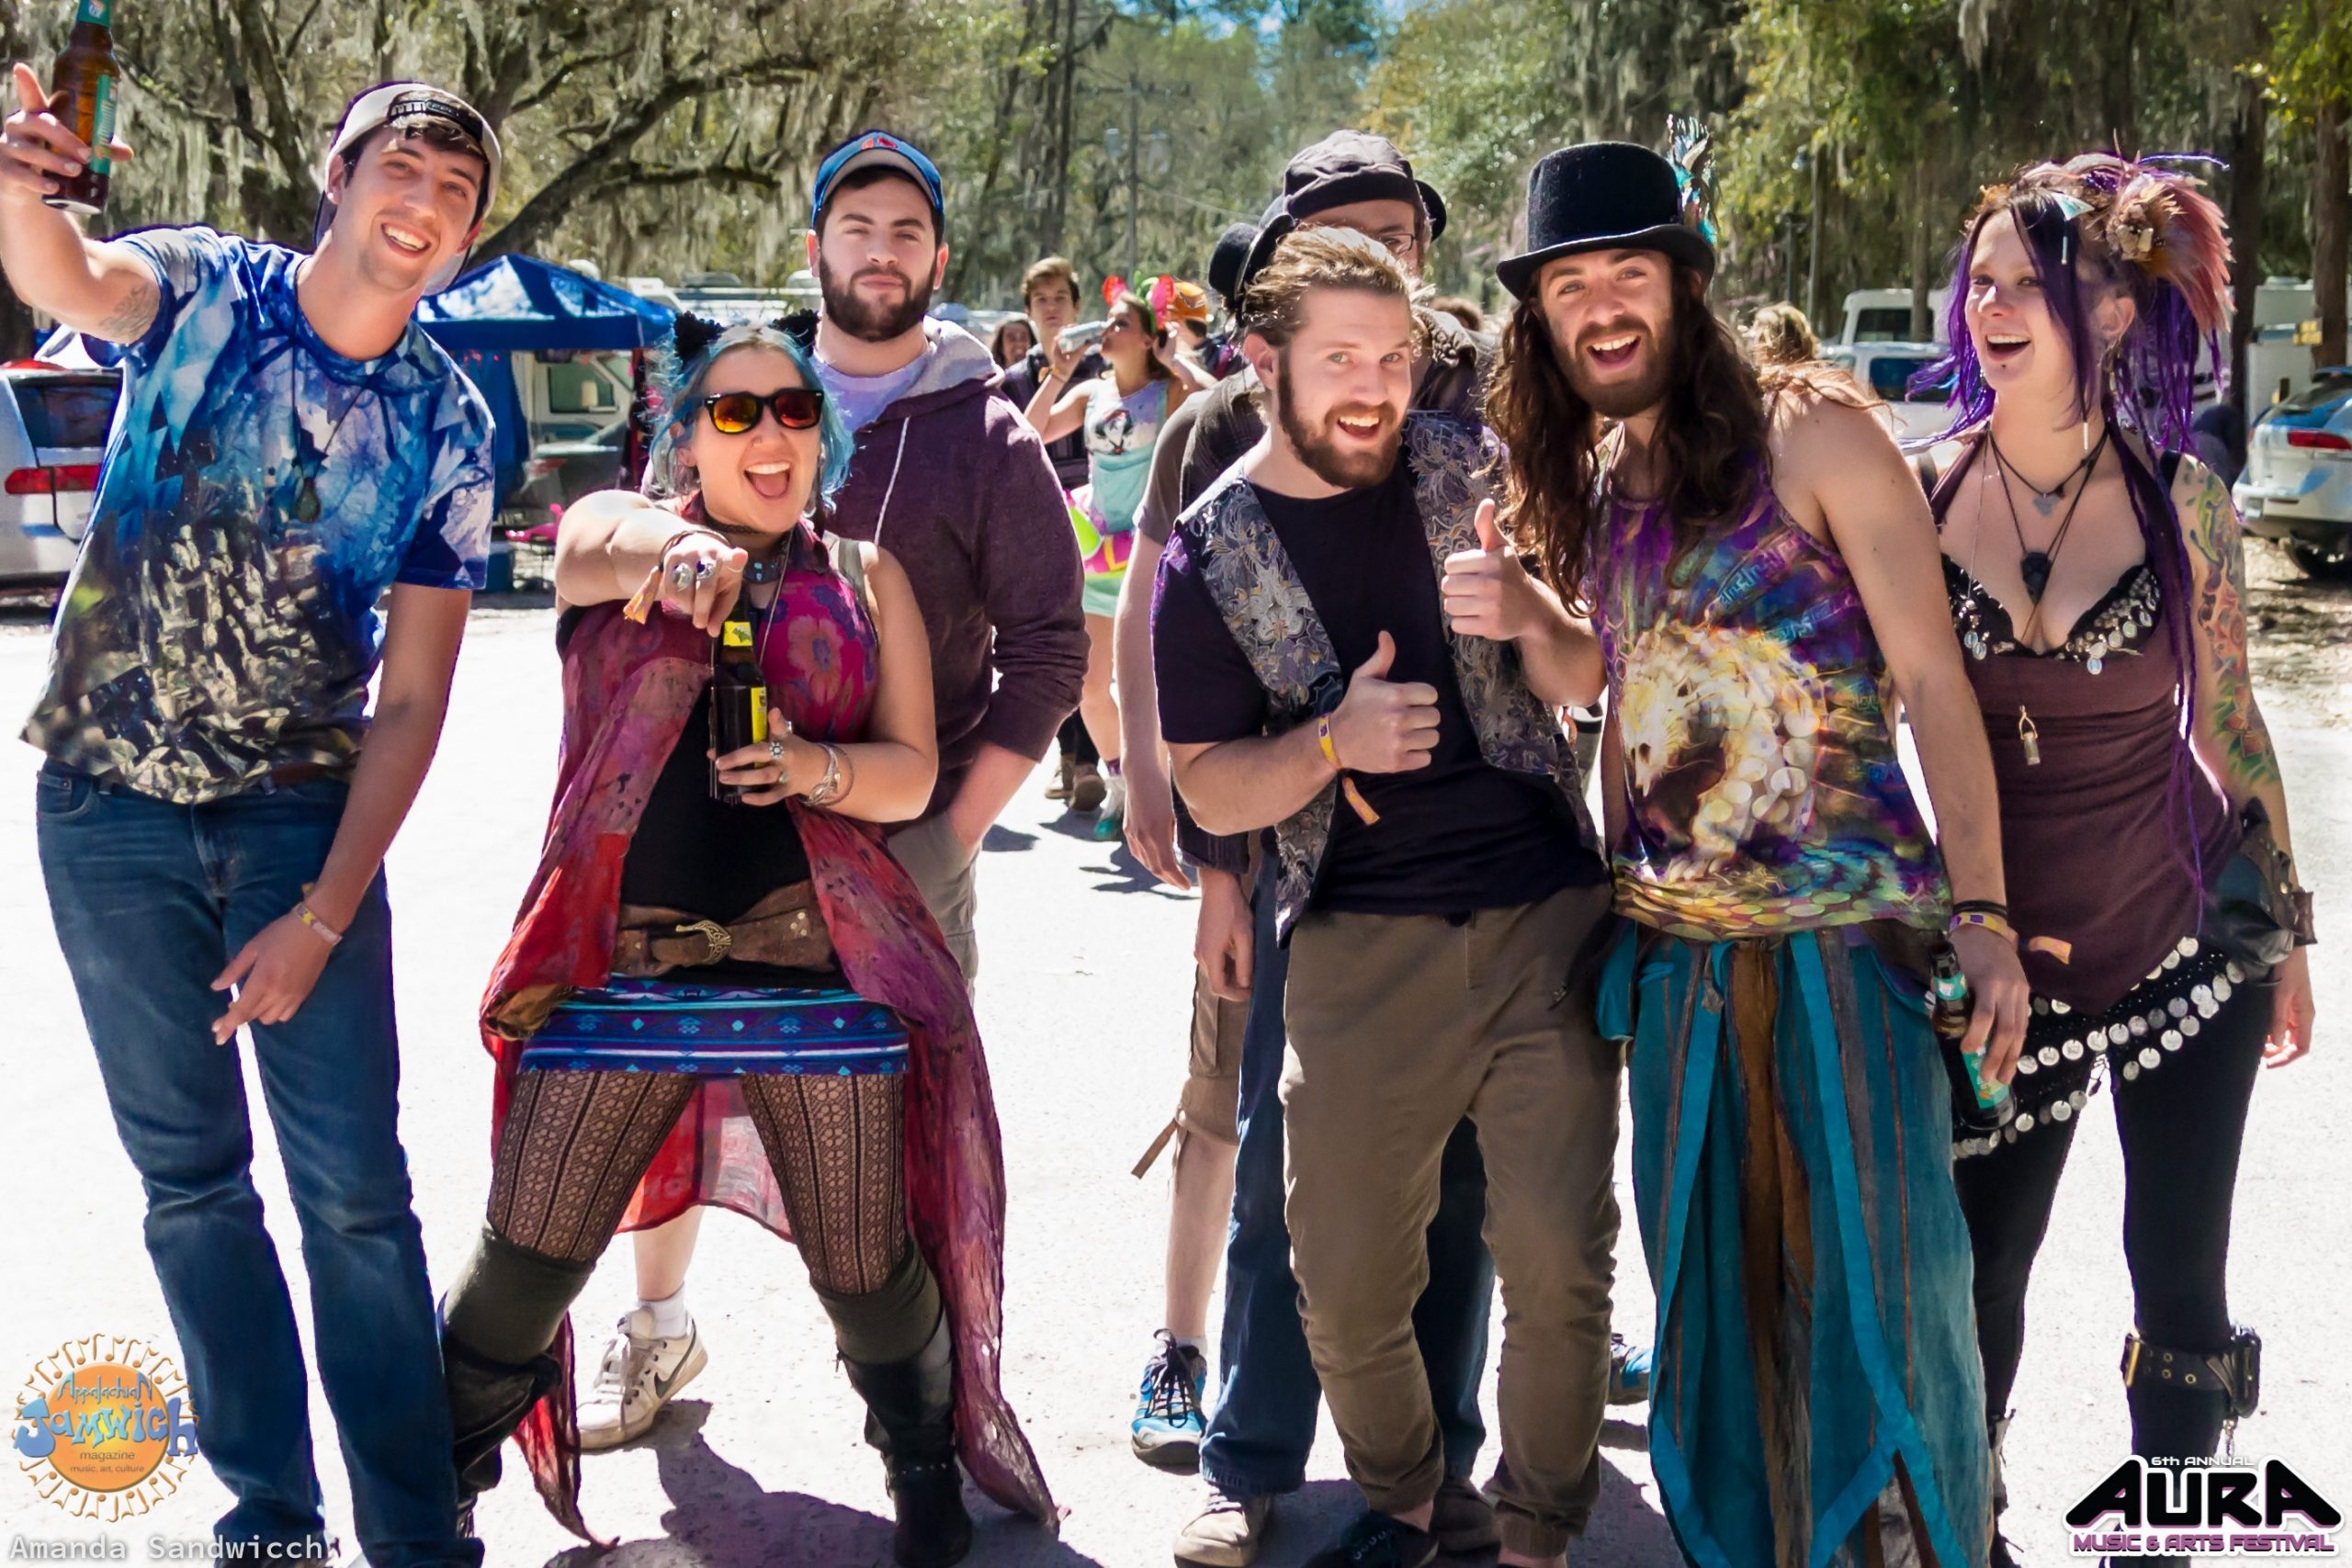 AURA Music Festival Review, March 6-8, 2015